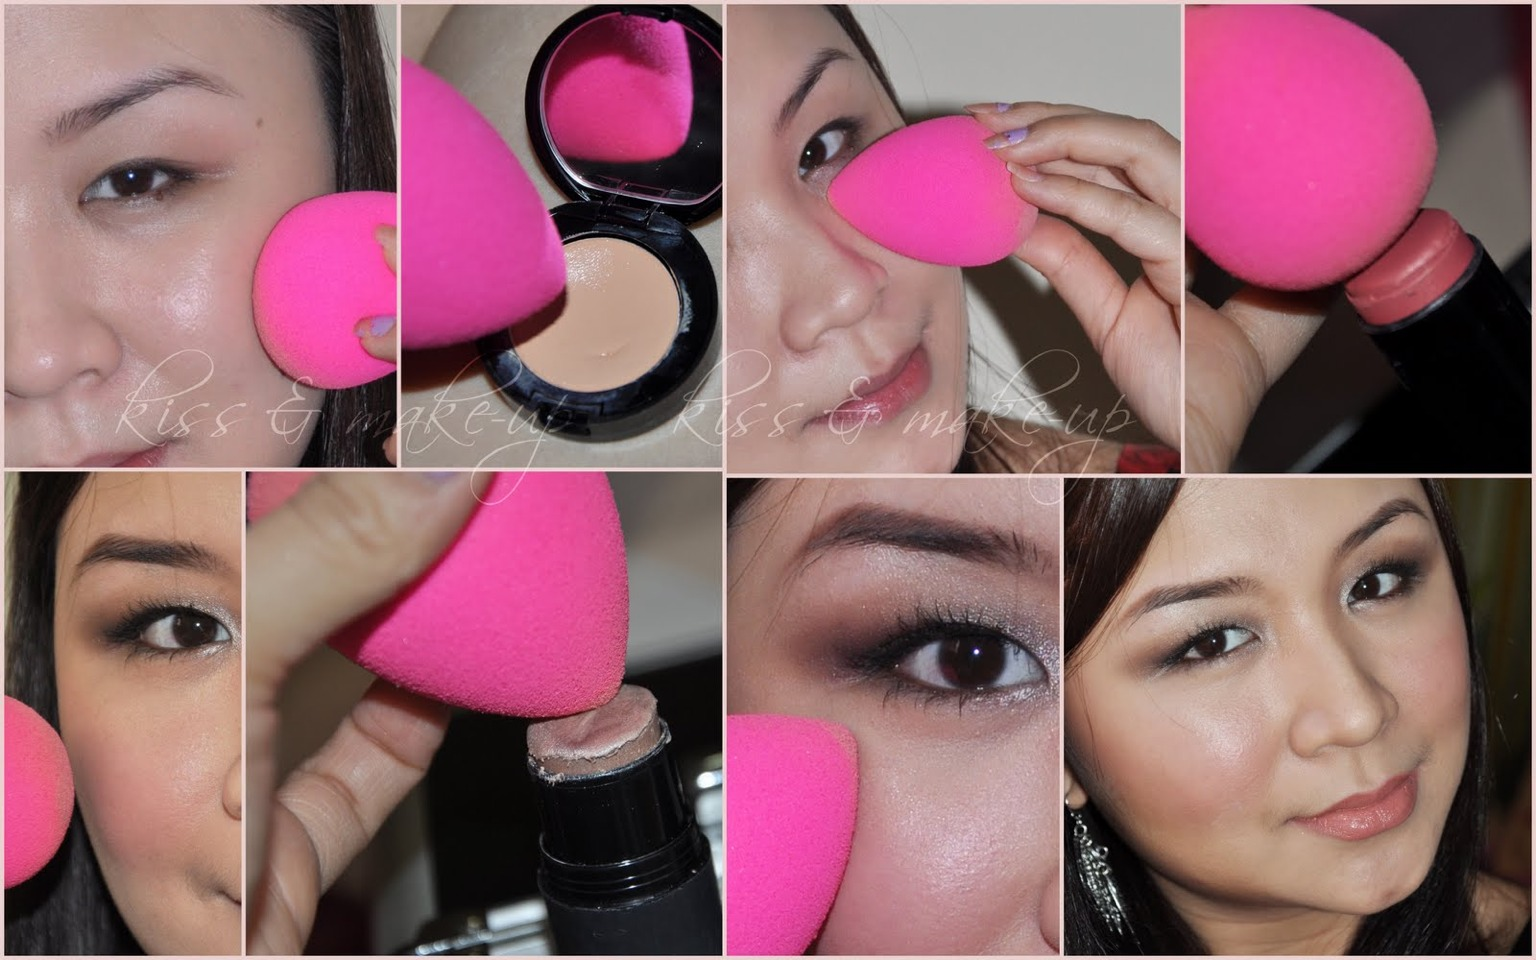 The beauty sponge works great to blend your makeup when contouring esp if you have dry skin. It's also very inexpensive on amazon. Hope you enjoy! Please like and follow 💄💋